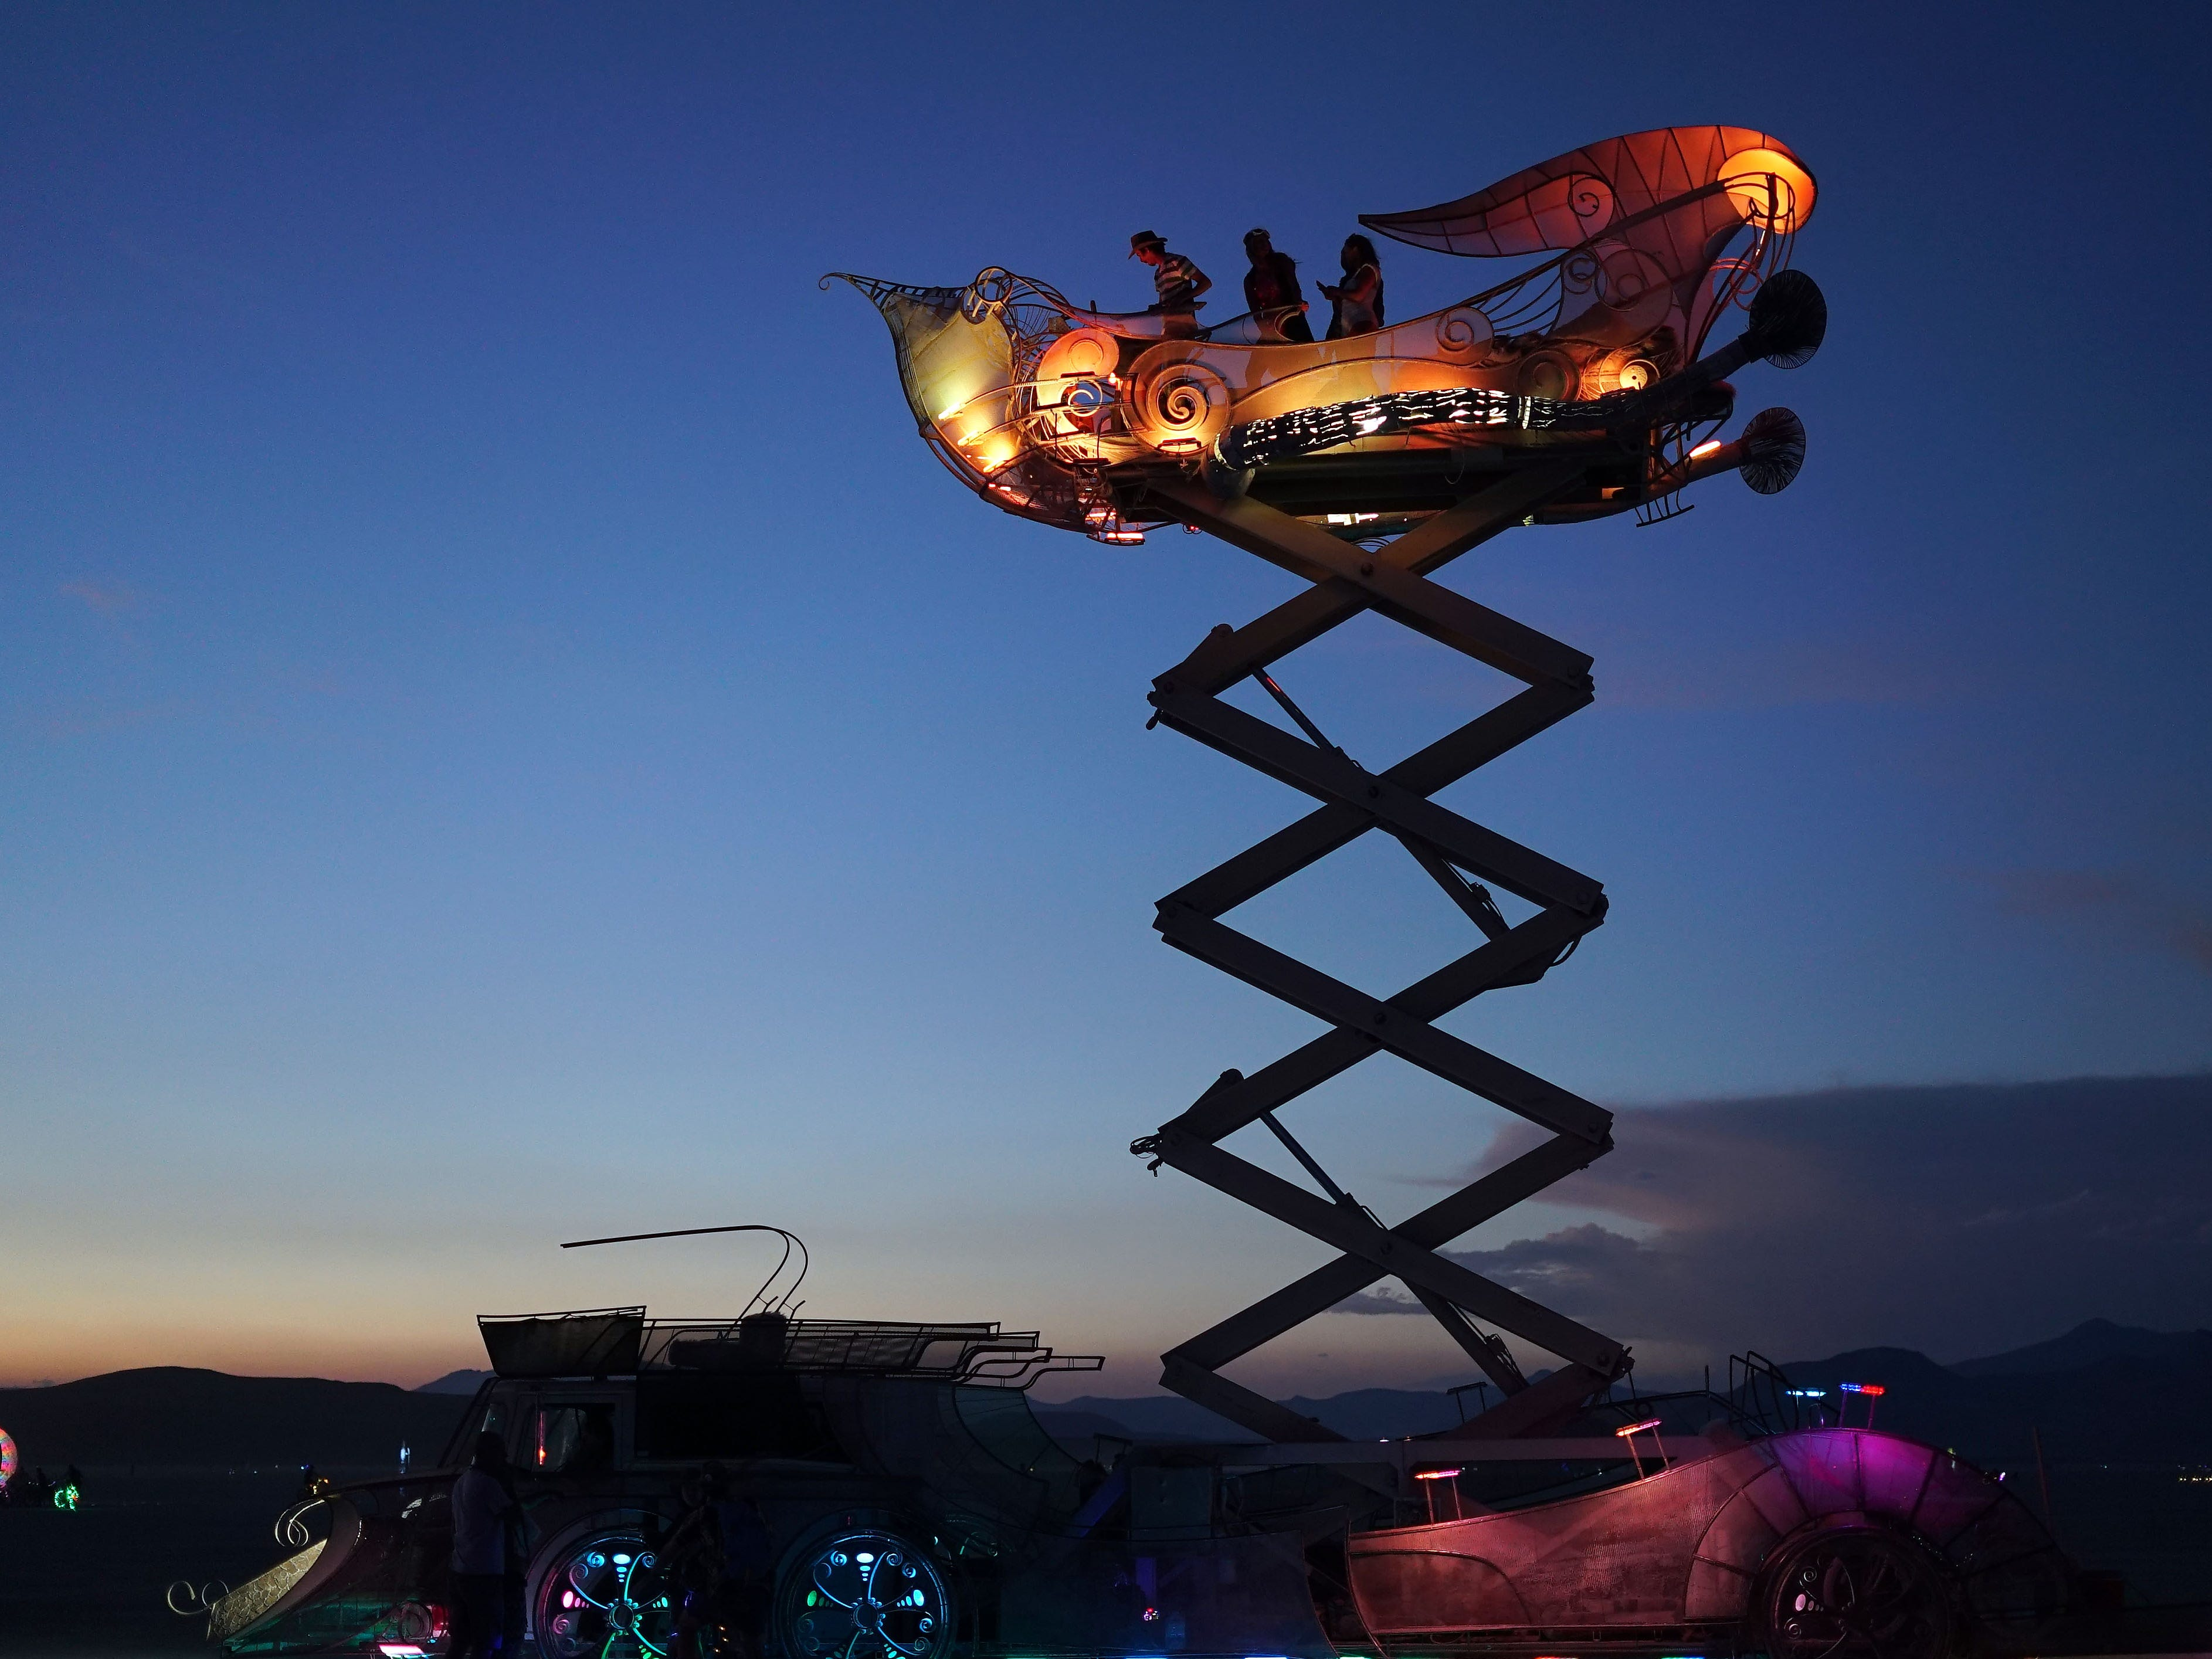 A DJ plays music from an elevated platform at Burning Man Aug. 30, 2018.